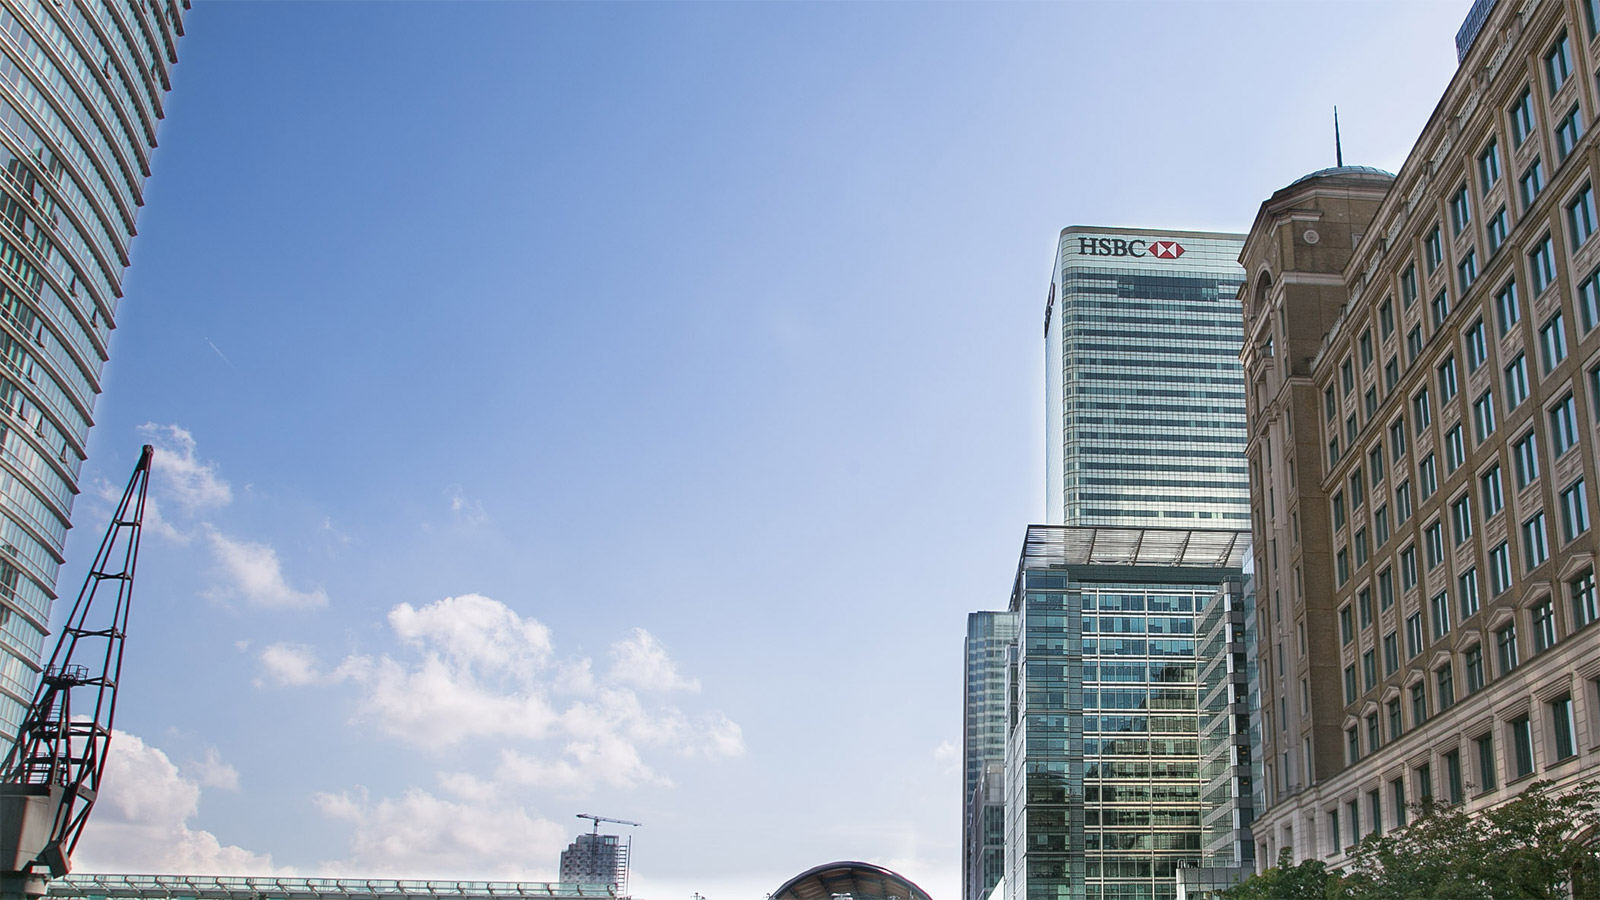 HSBC's headquarters in Canary Wharf, London